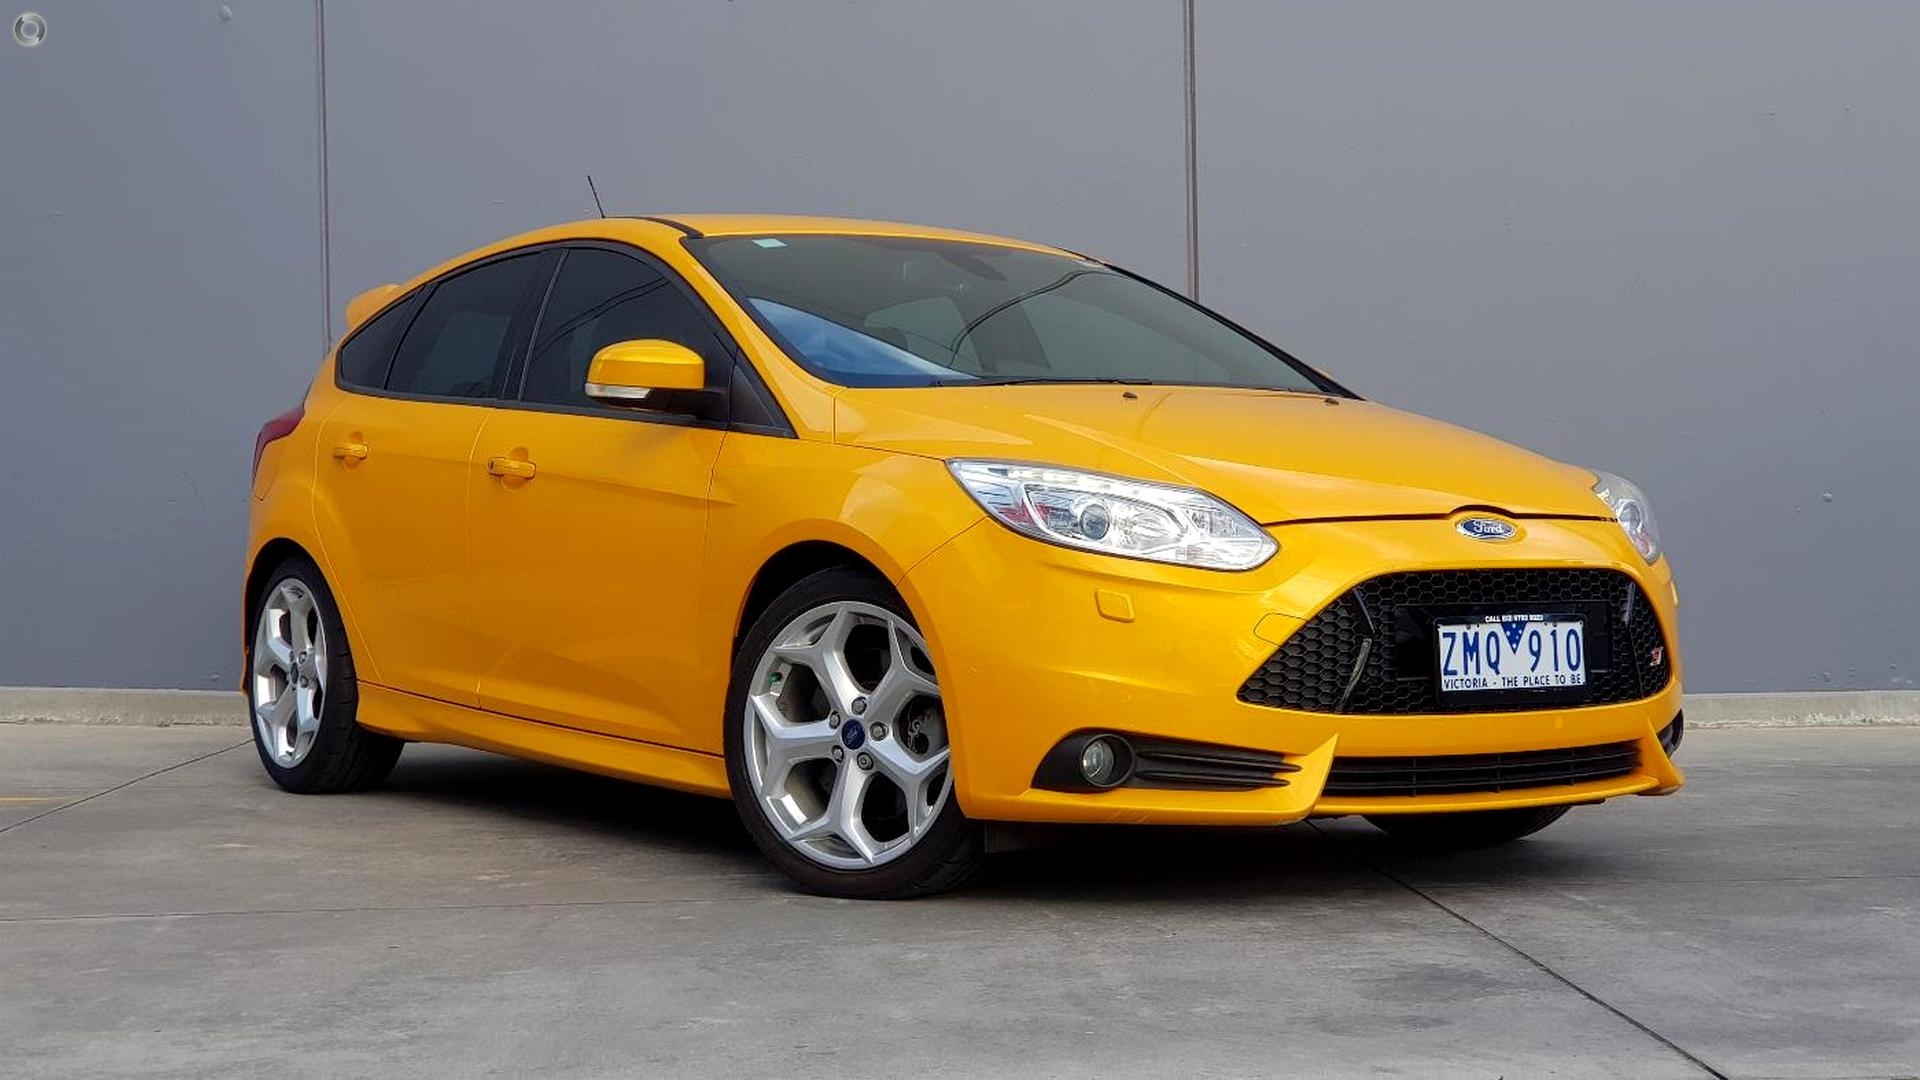 2012 Ford Focus LW MKII